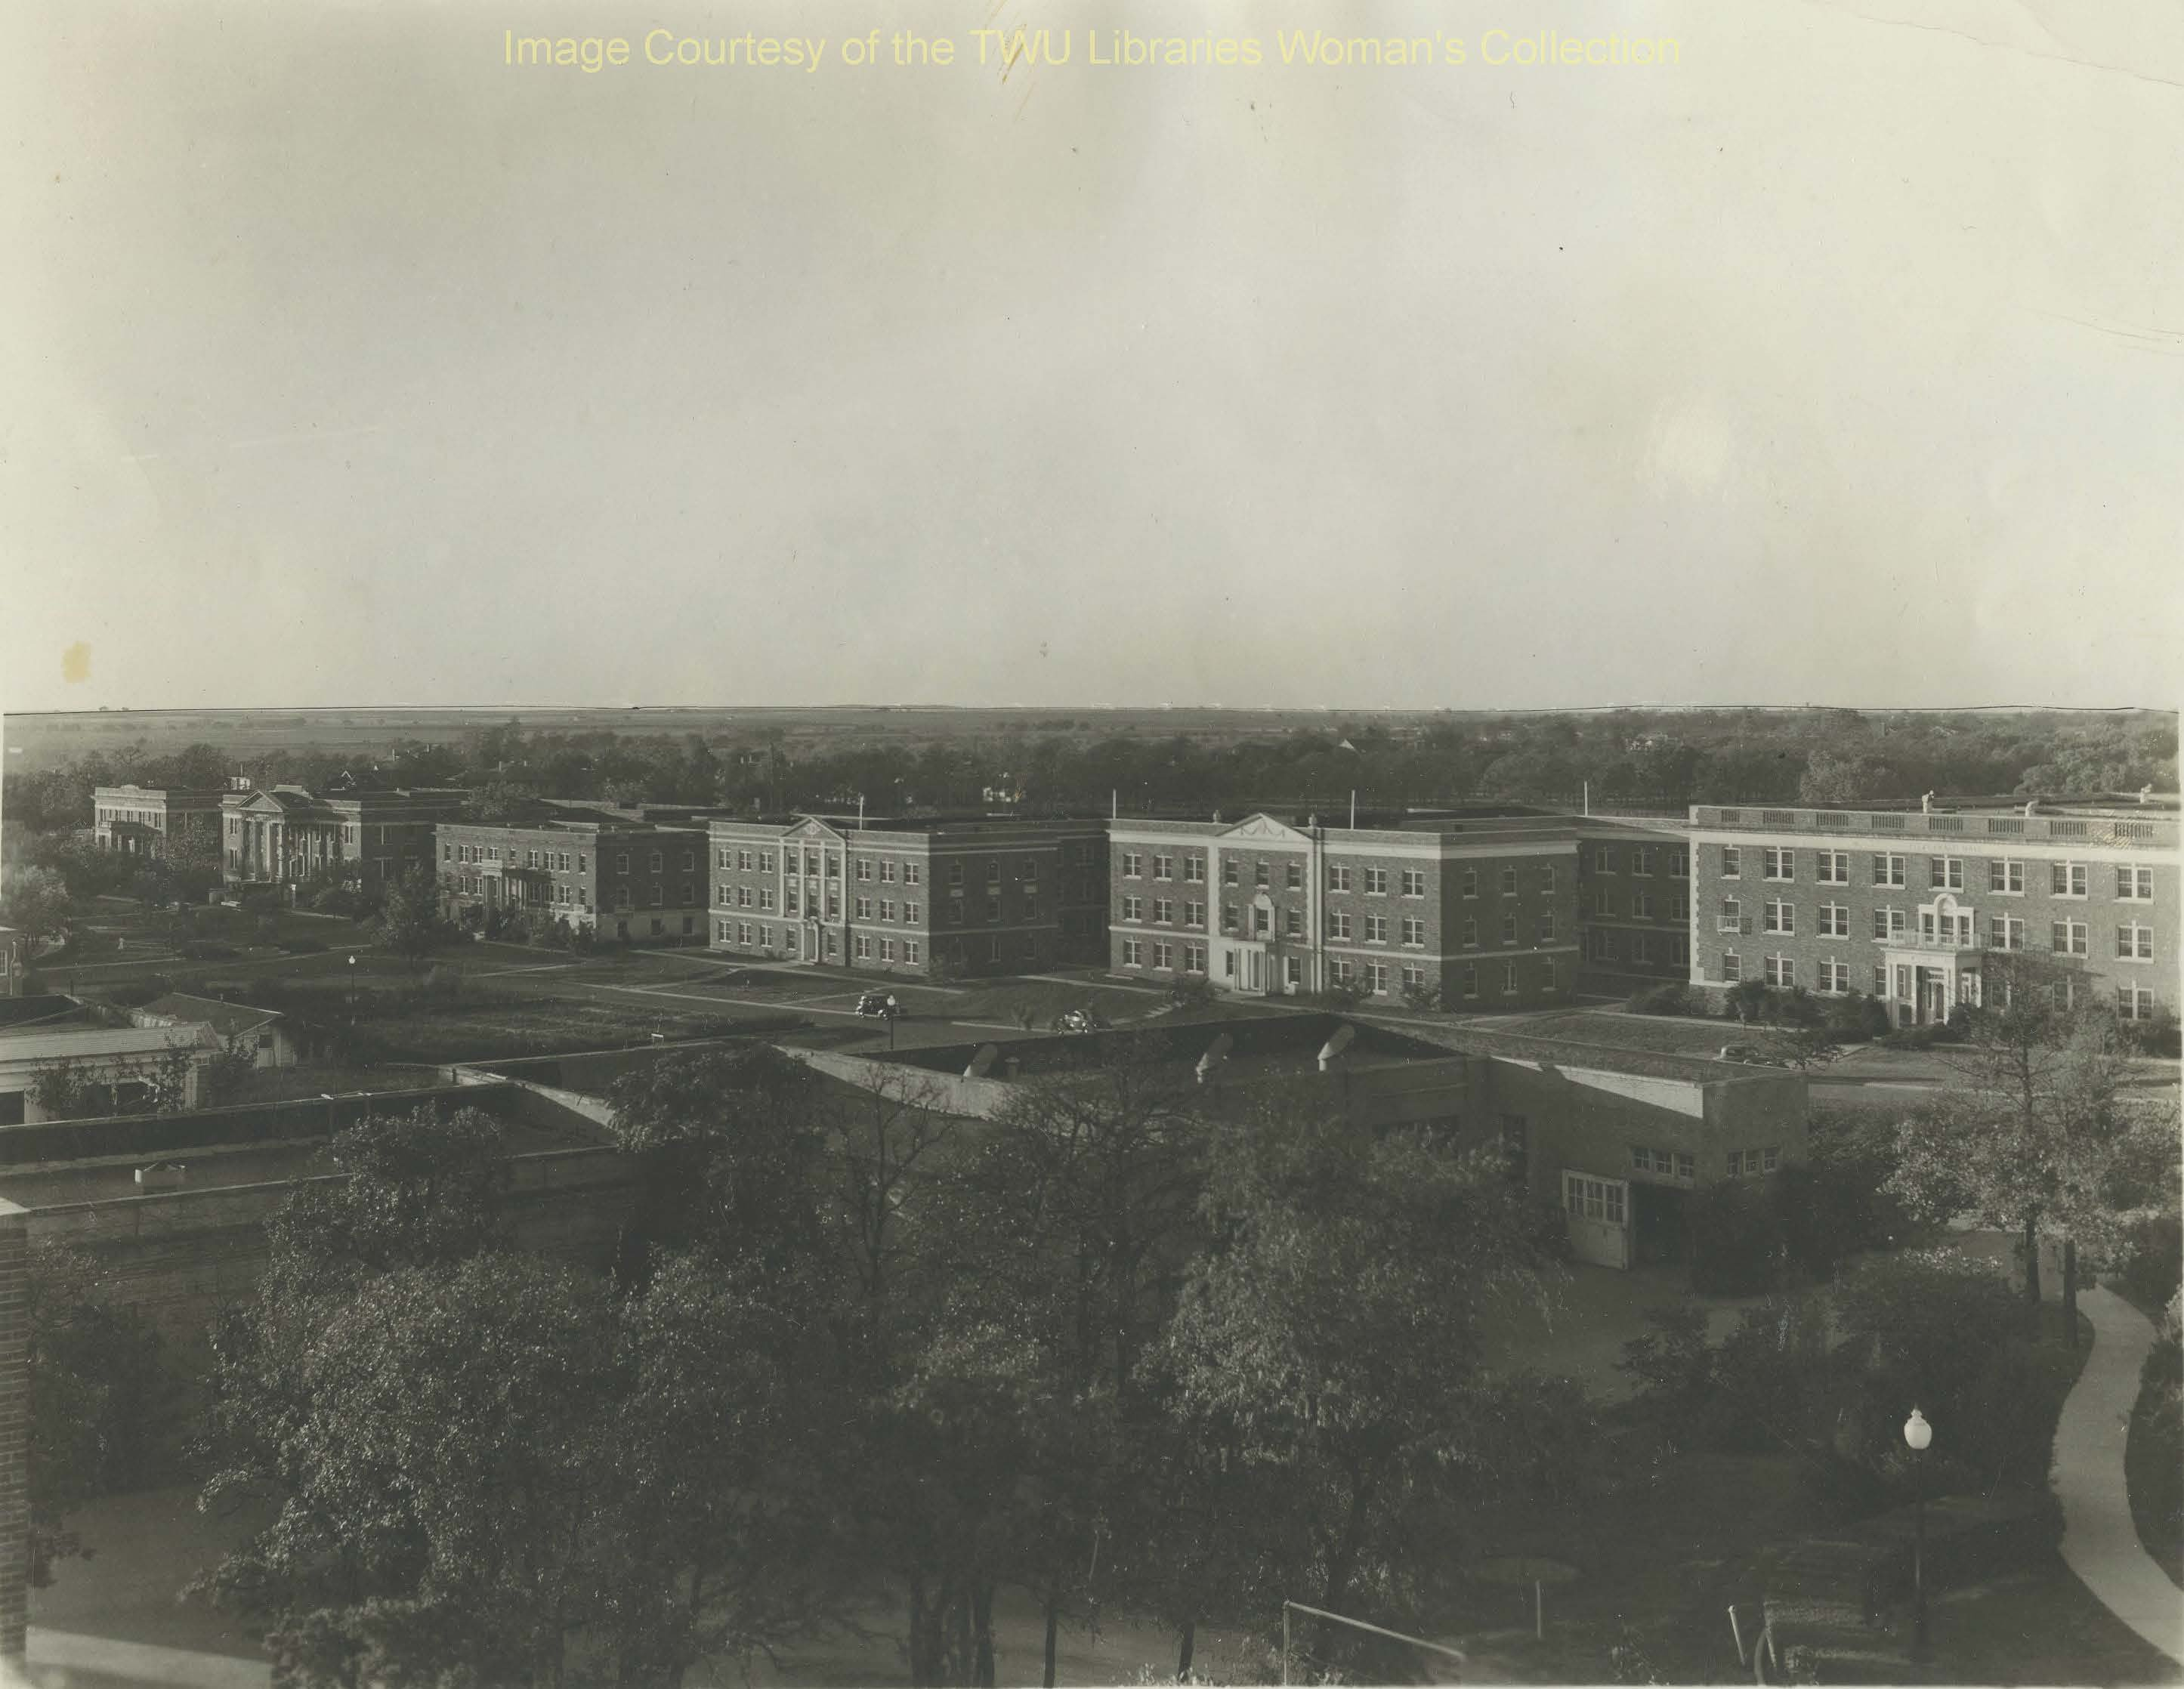 Dormitory Row, the complex of residence halls built along Oakland Avenue that were demolished to make room for the new Blagg-Huey Library. (Photo: Courtesy TWU Woman's Collection)